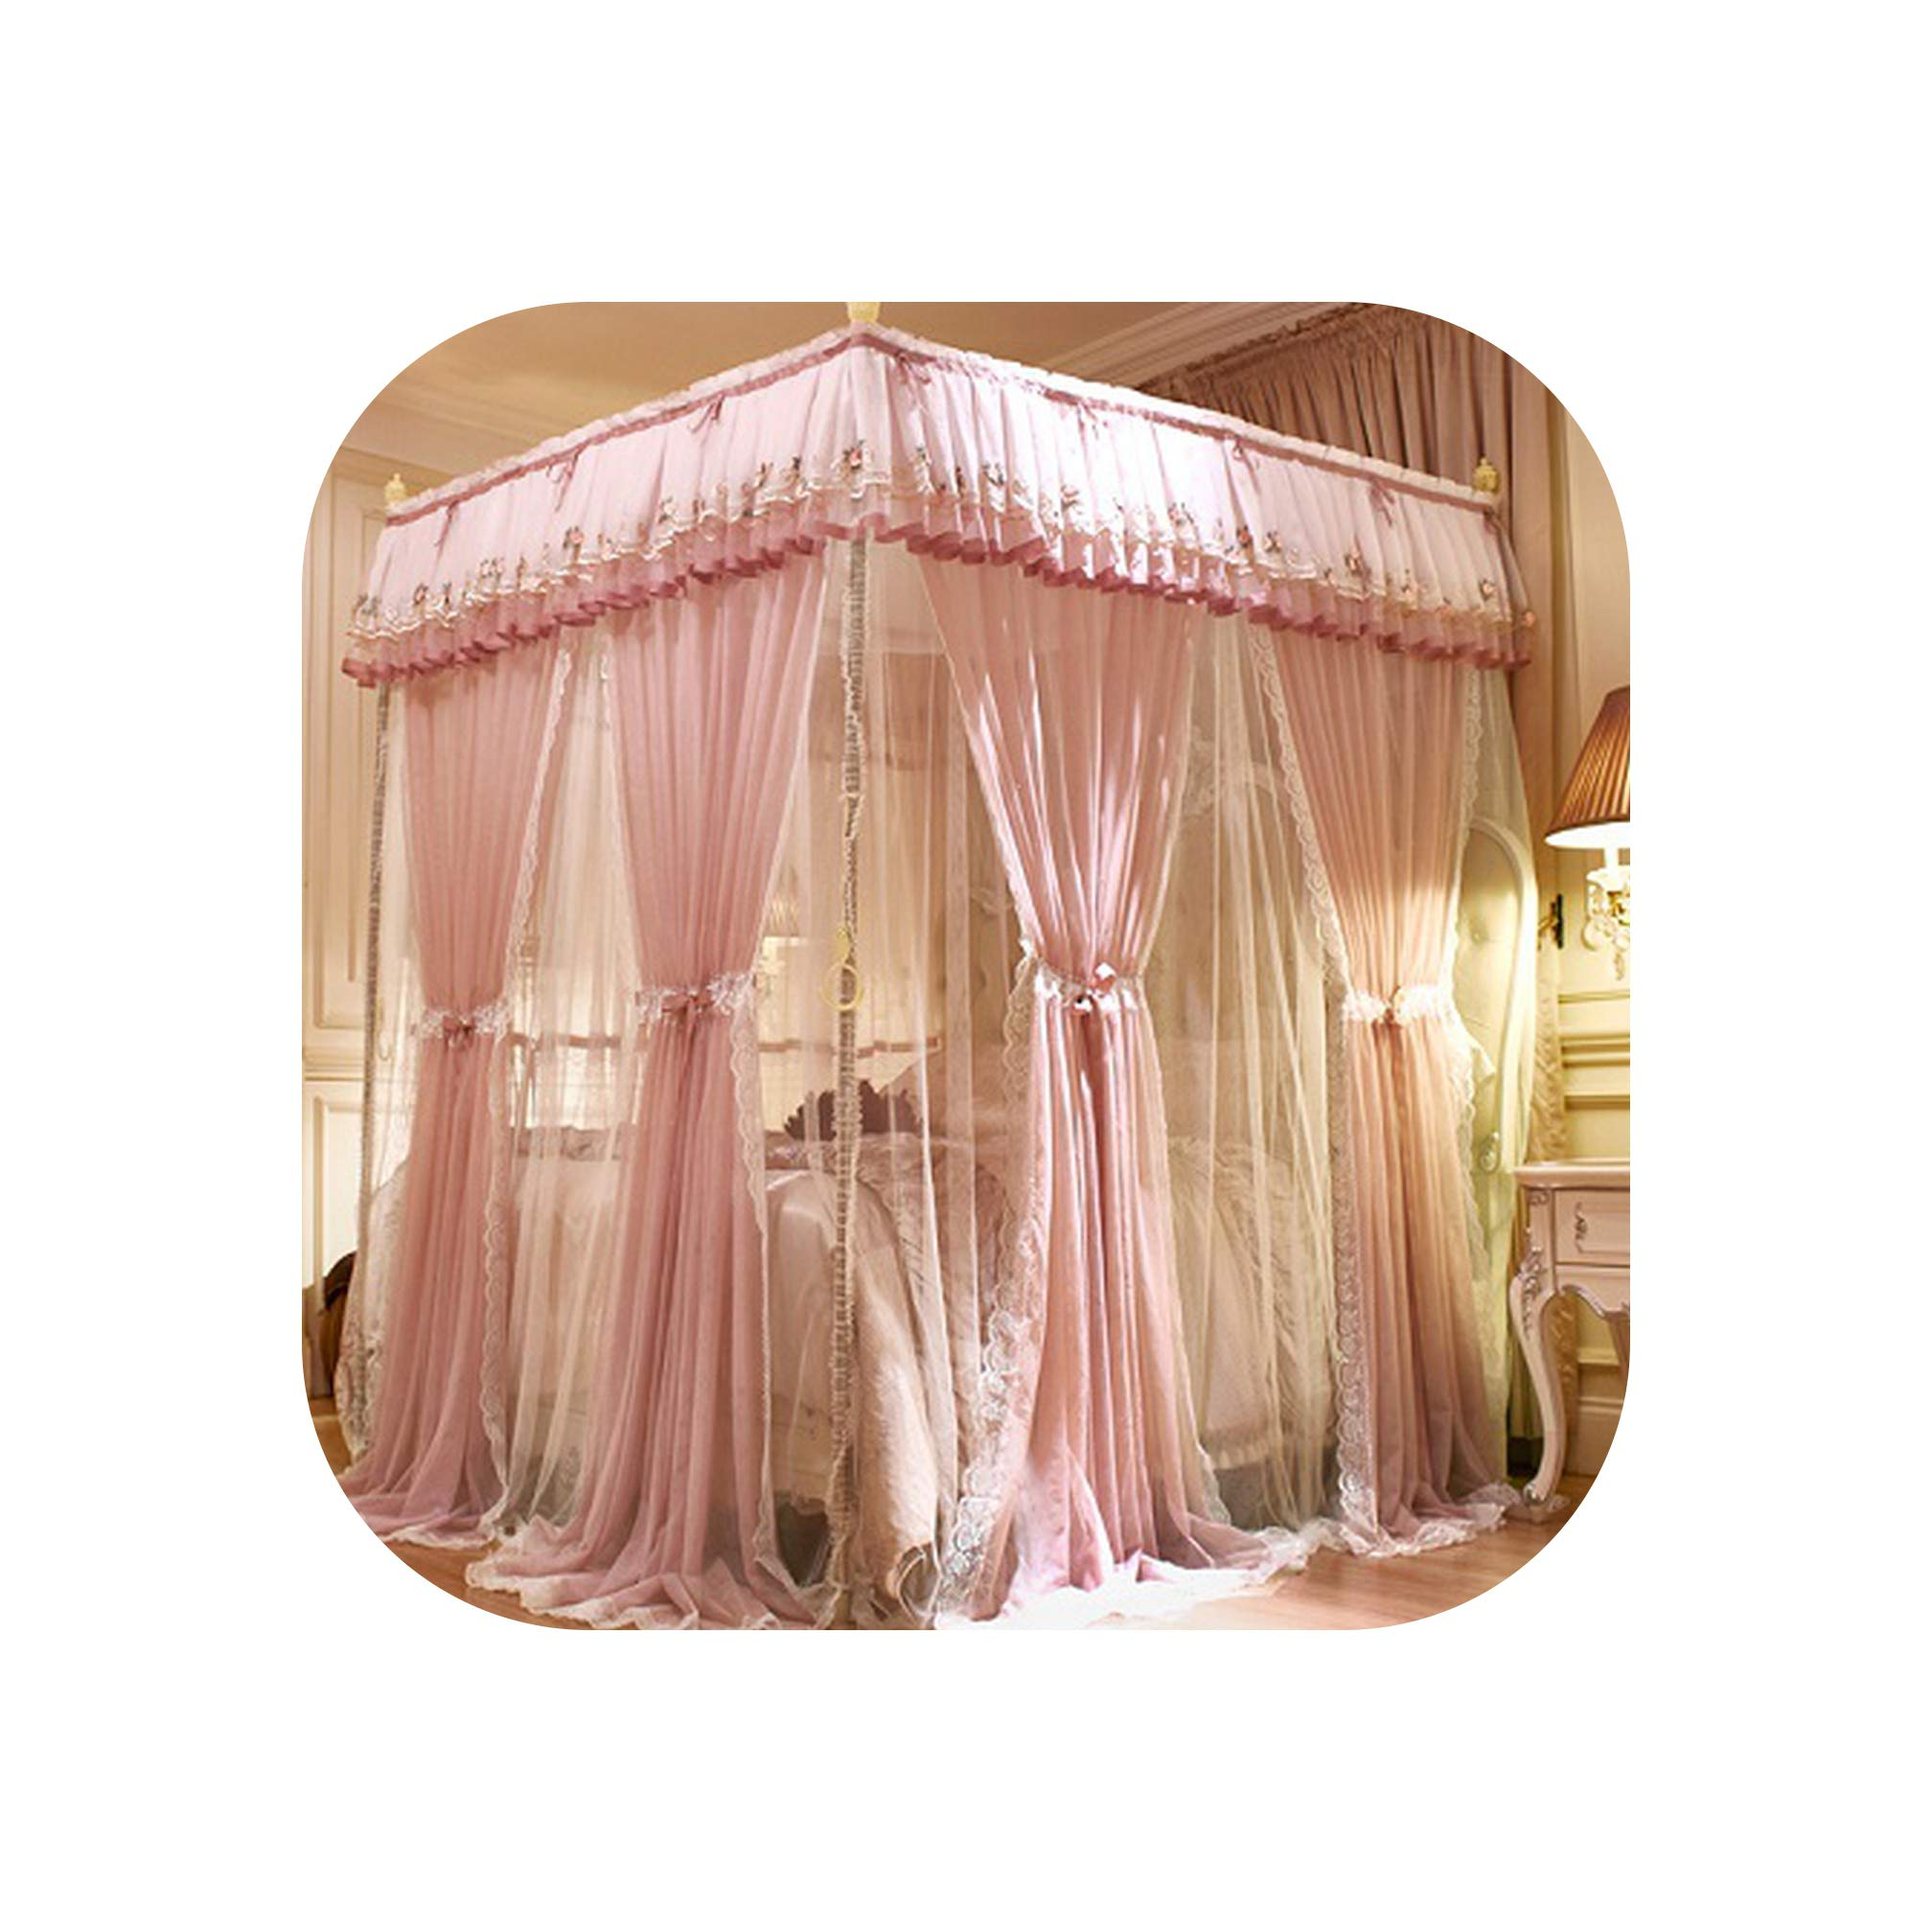 Pink Gray Green Double Deck Romantic White Lace Three Door Quadrate Floor Standing Mosquito Net Bedding Set,2,A 150X200cm by SuWuan mosquito net (Image #1)